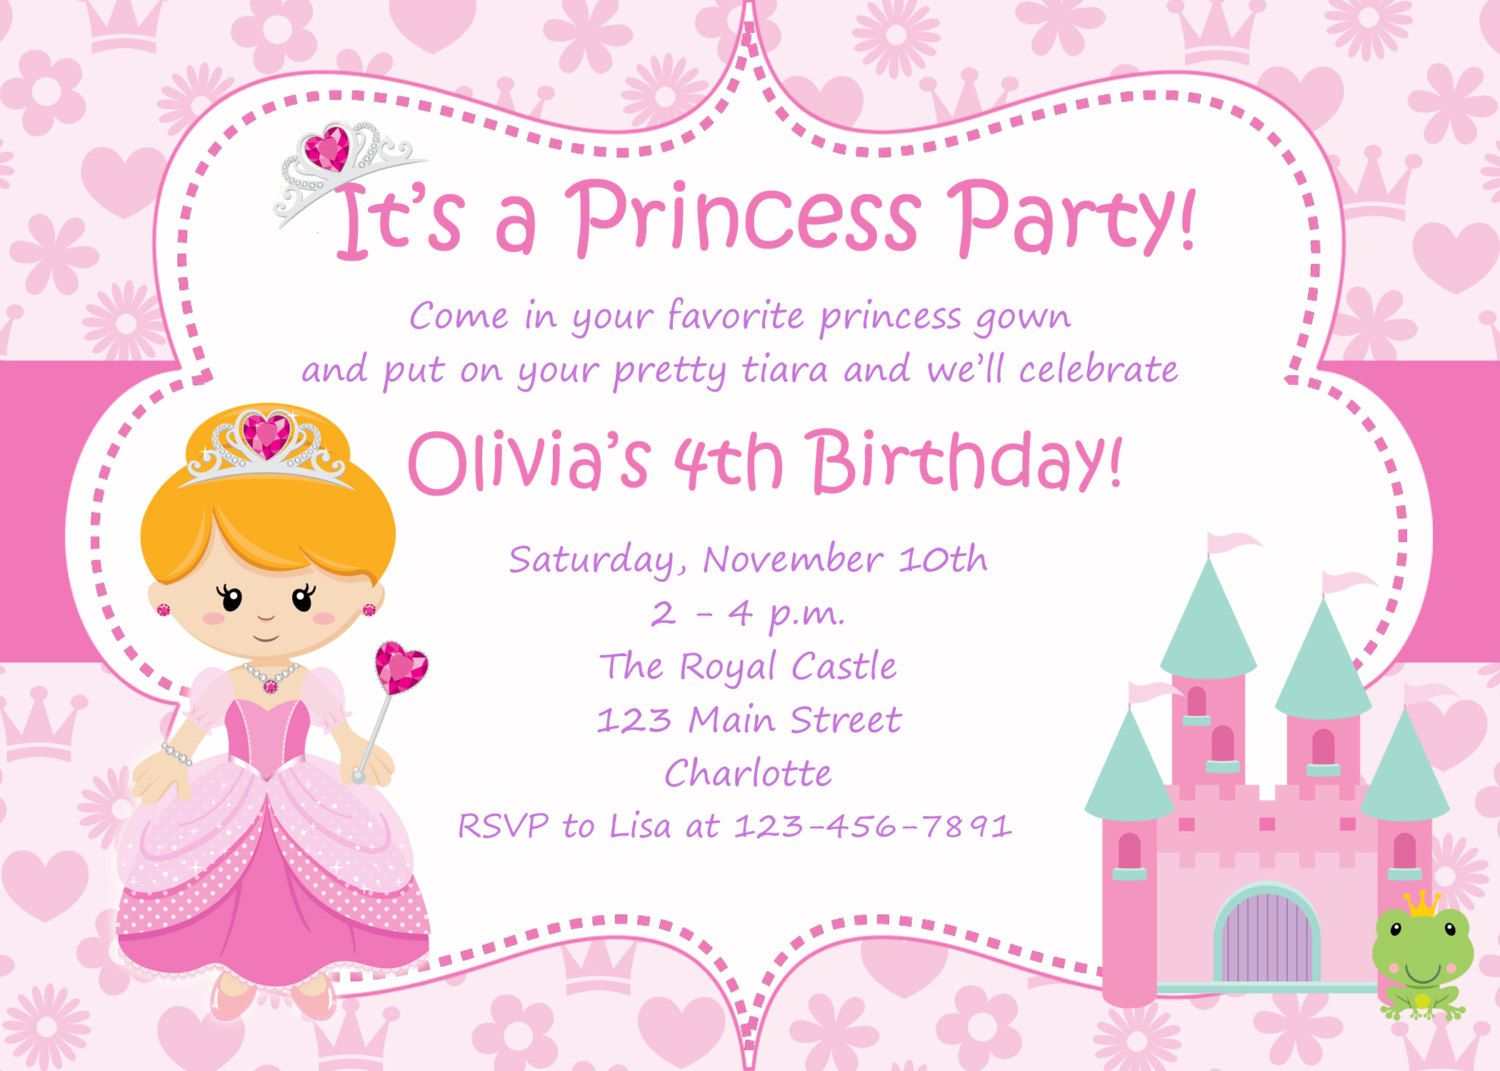 Princess party birthday invitation any hair by thebutterflypress party invitations beautiful pretty cute chic girly love tiara flower pattern background with princess vector images princess party invites for kids stopboris Choice Image